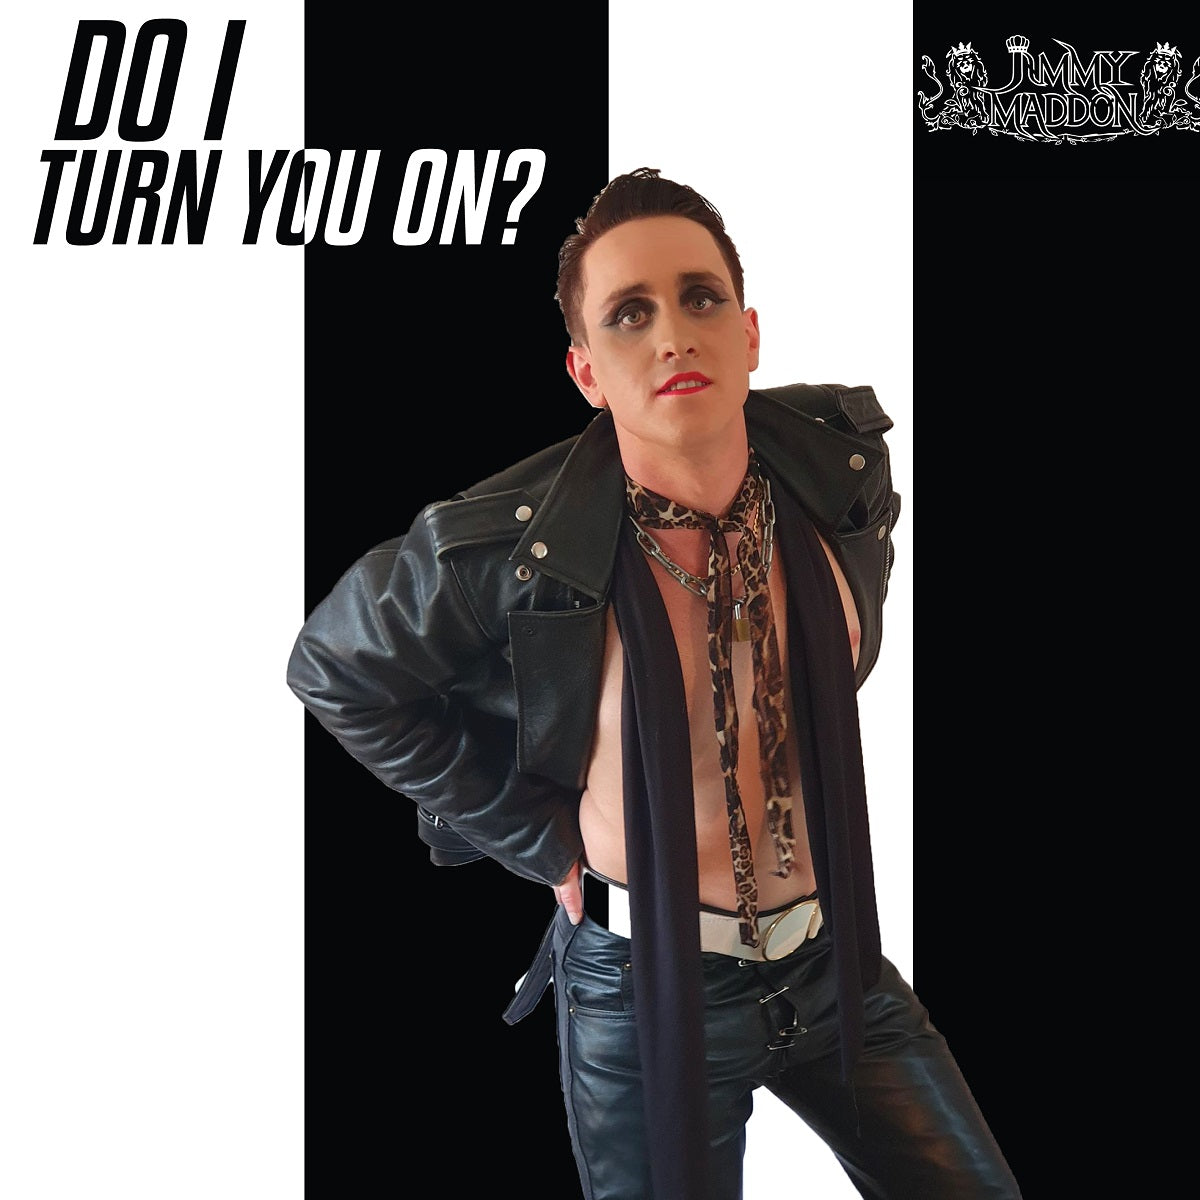 Jimmy Maddon – 'Do I Turn You On?'